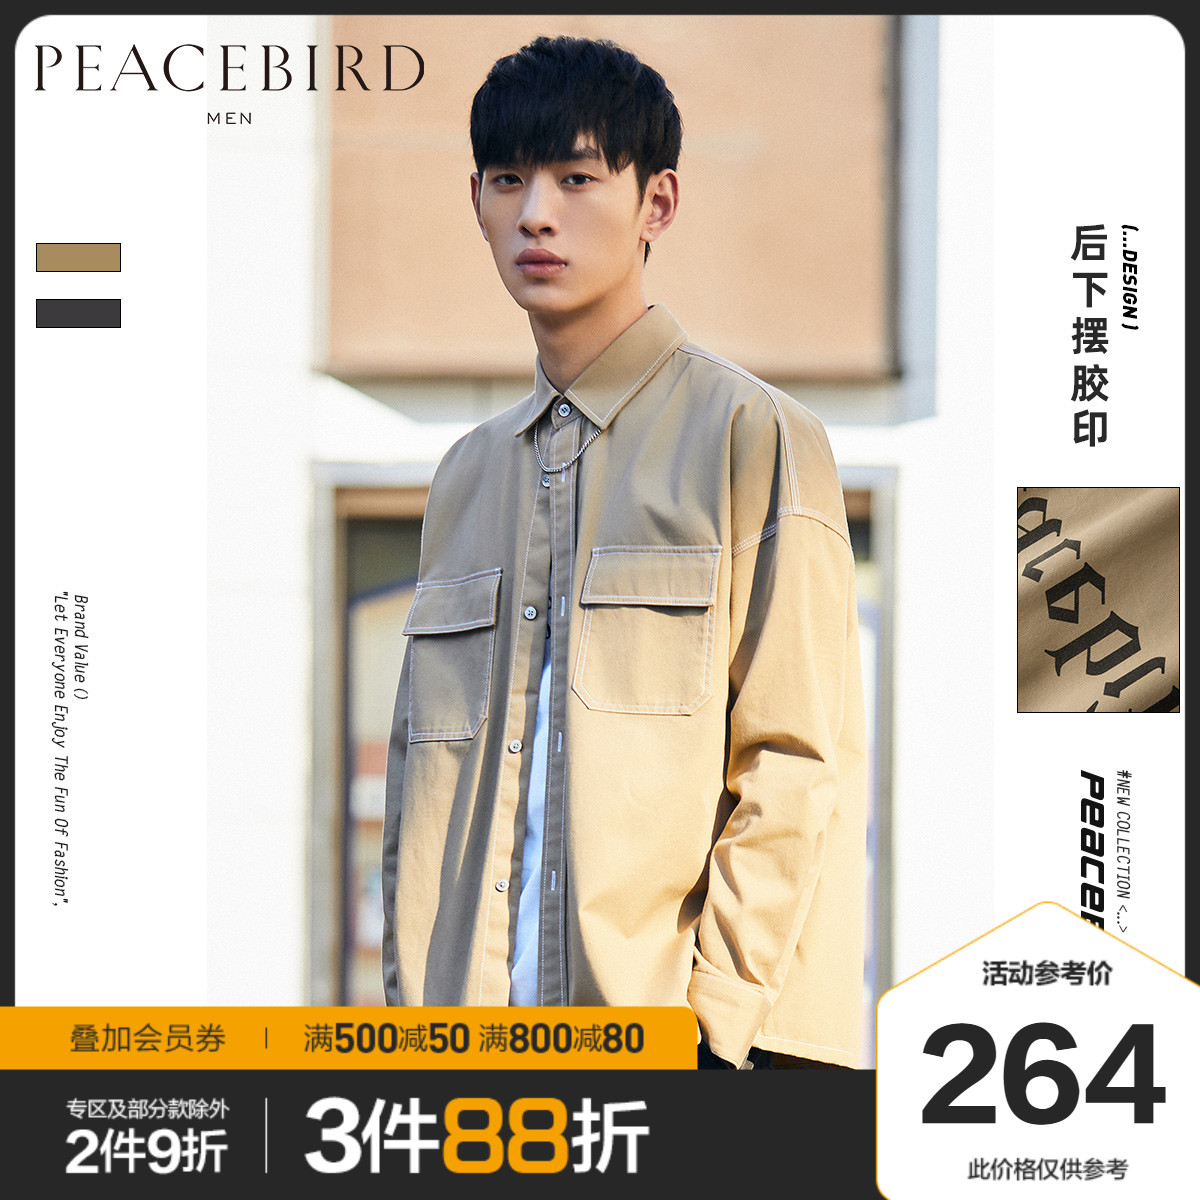 Peacebird men's clothing work shirt hem offset printing fashion lapel jacket autumn loose casual long-sleeved shirt